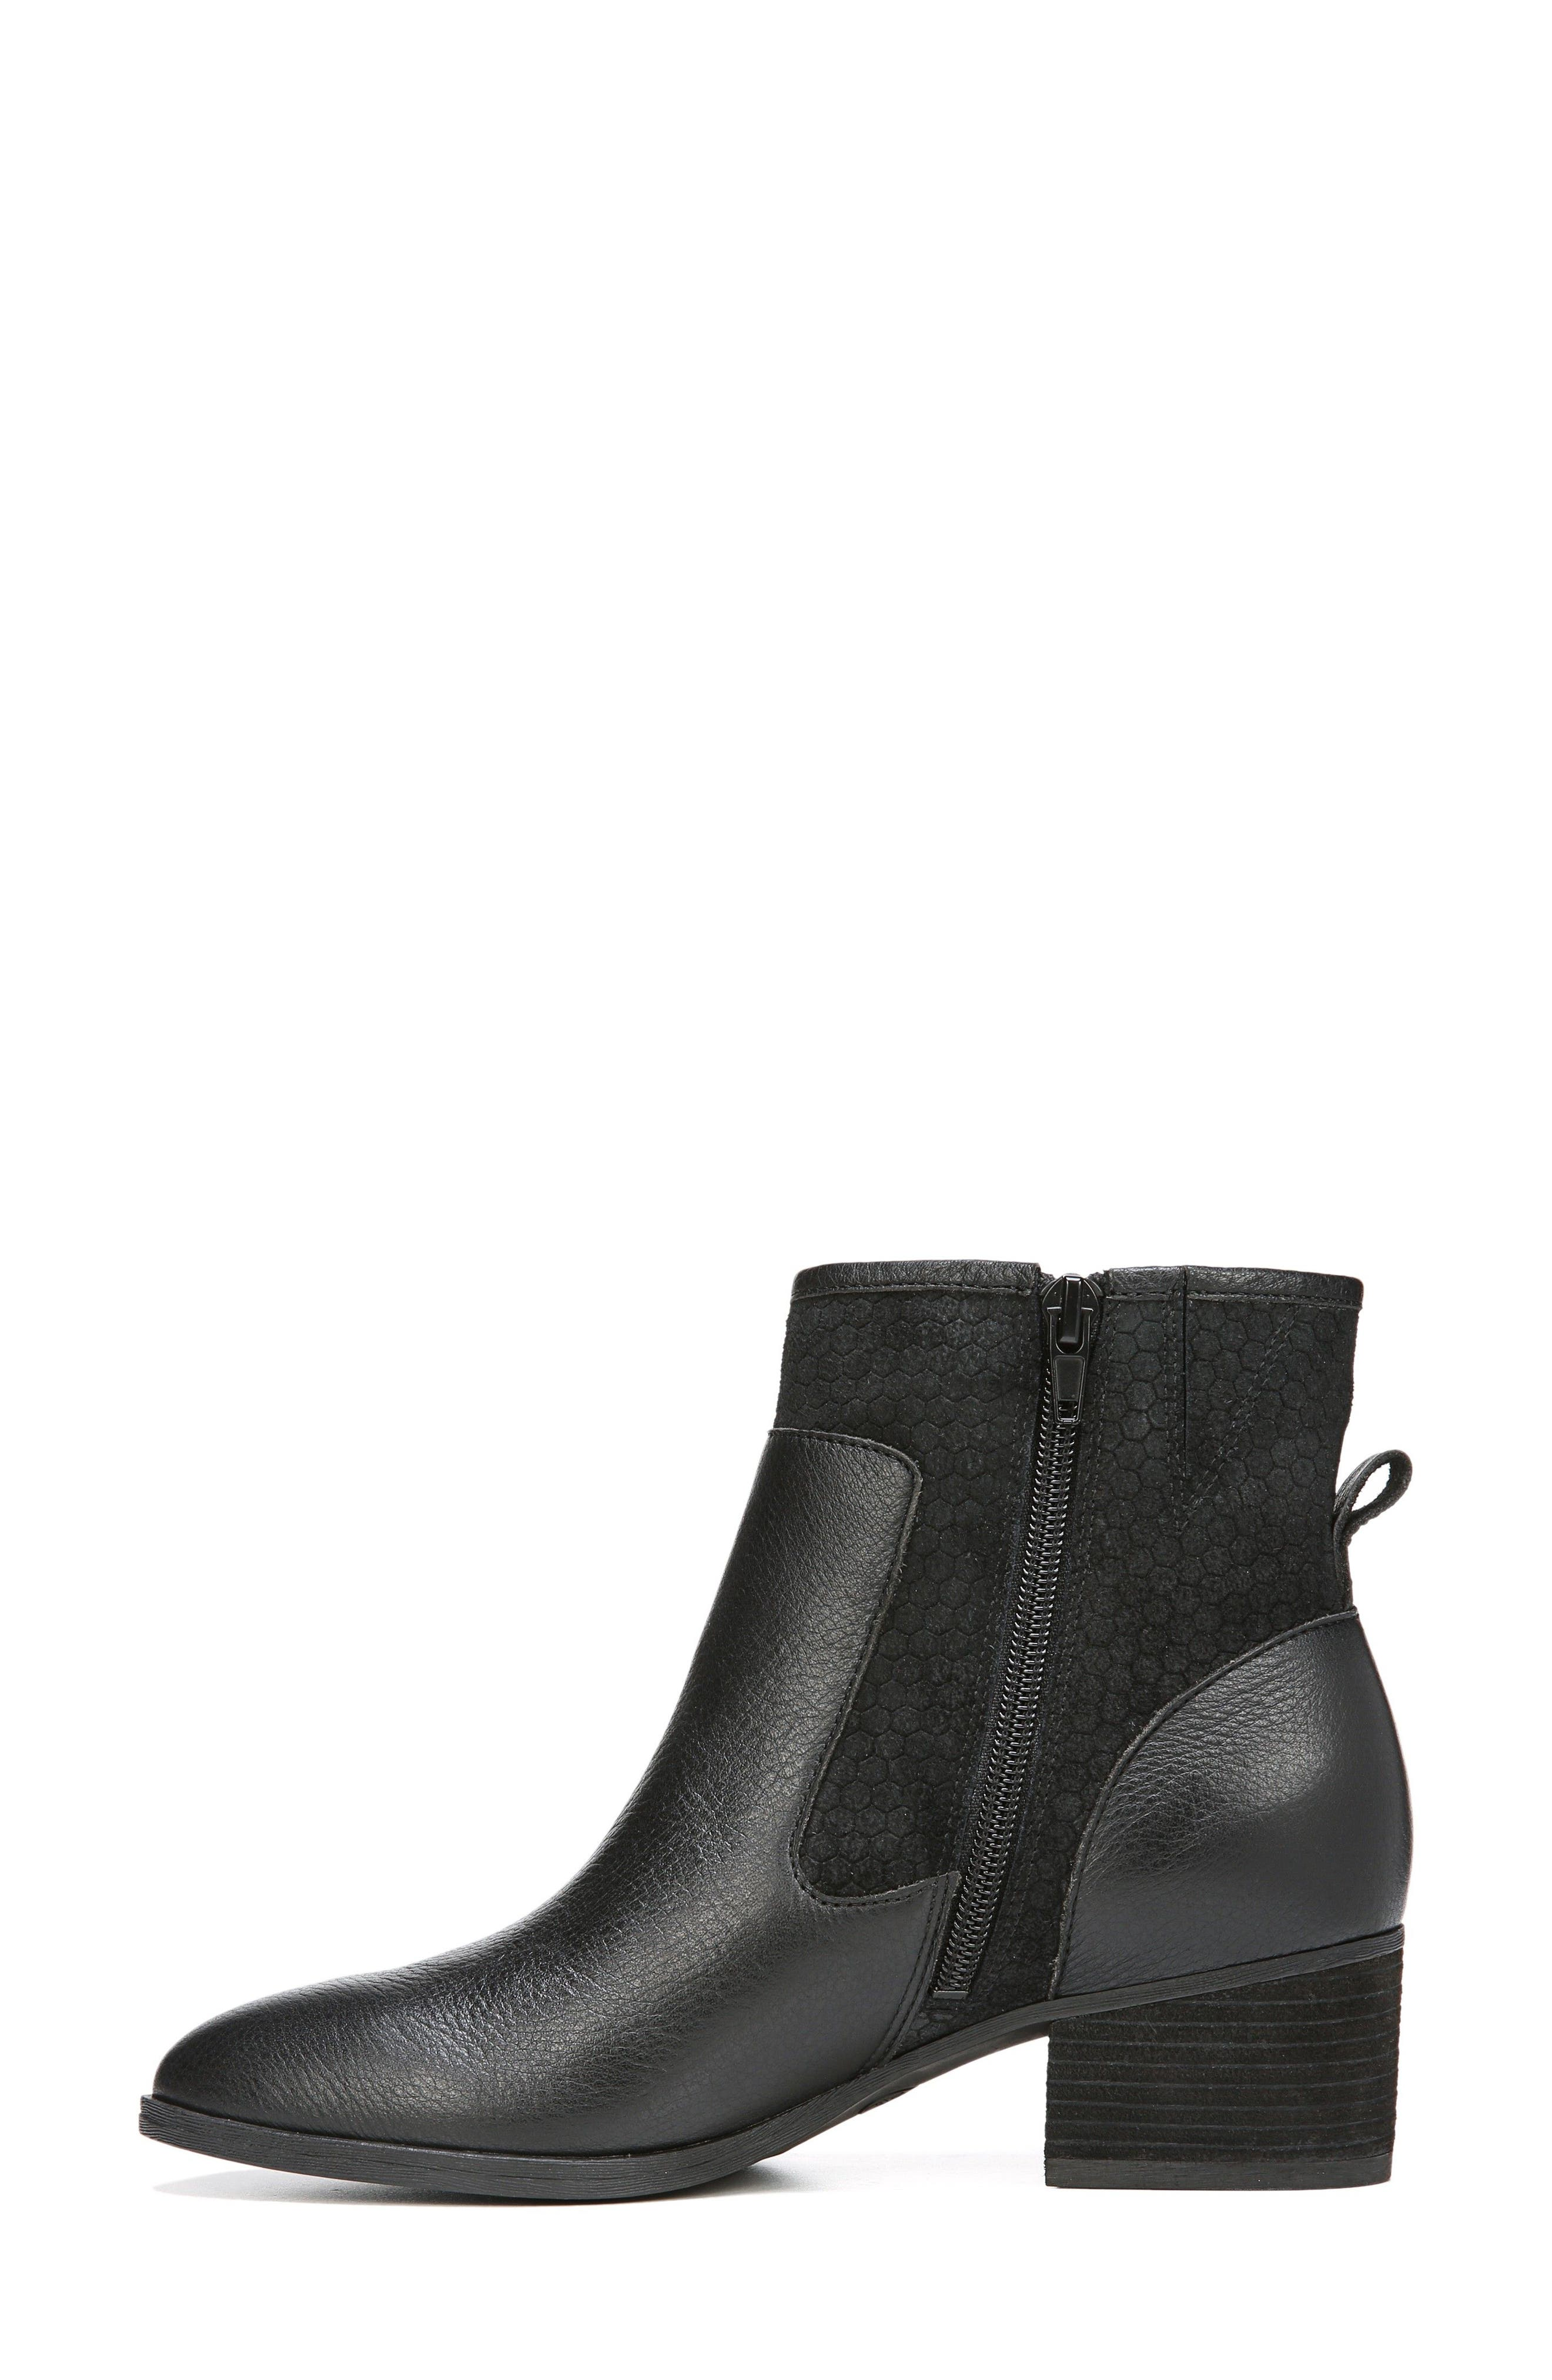 Tawny Bootie,                             Alternate thumbnail 3, color,                             001